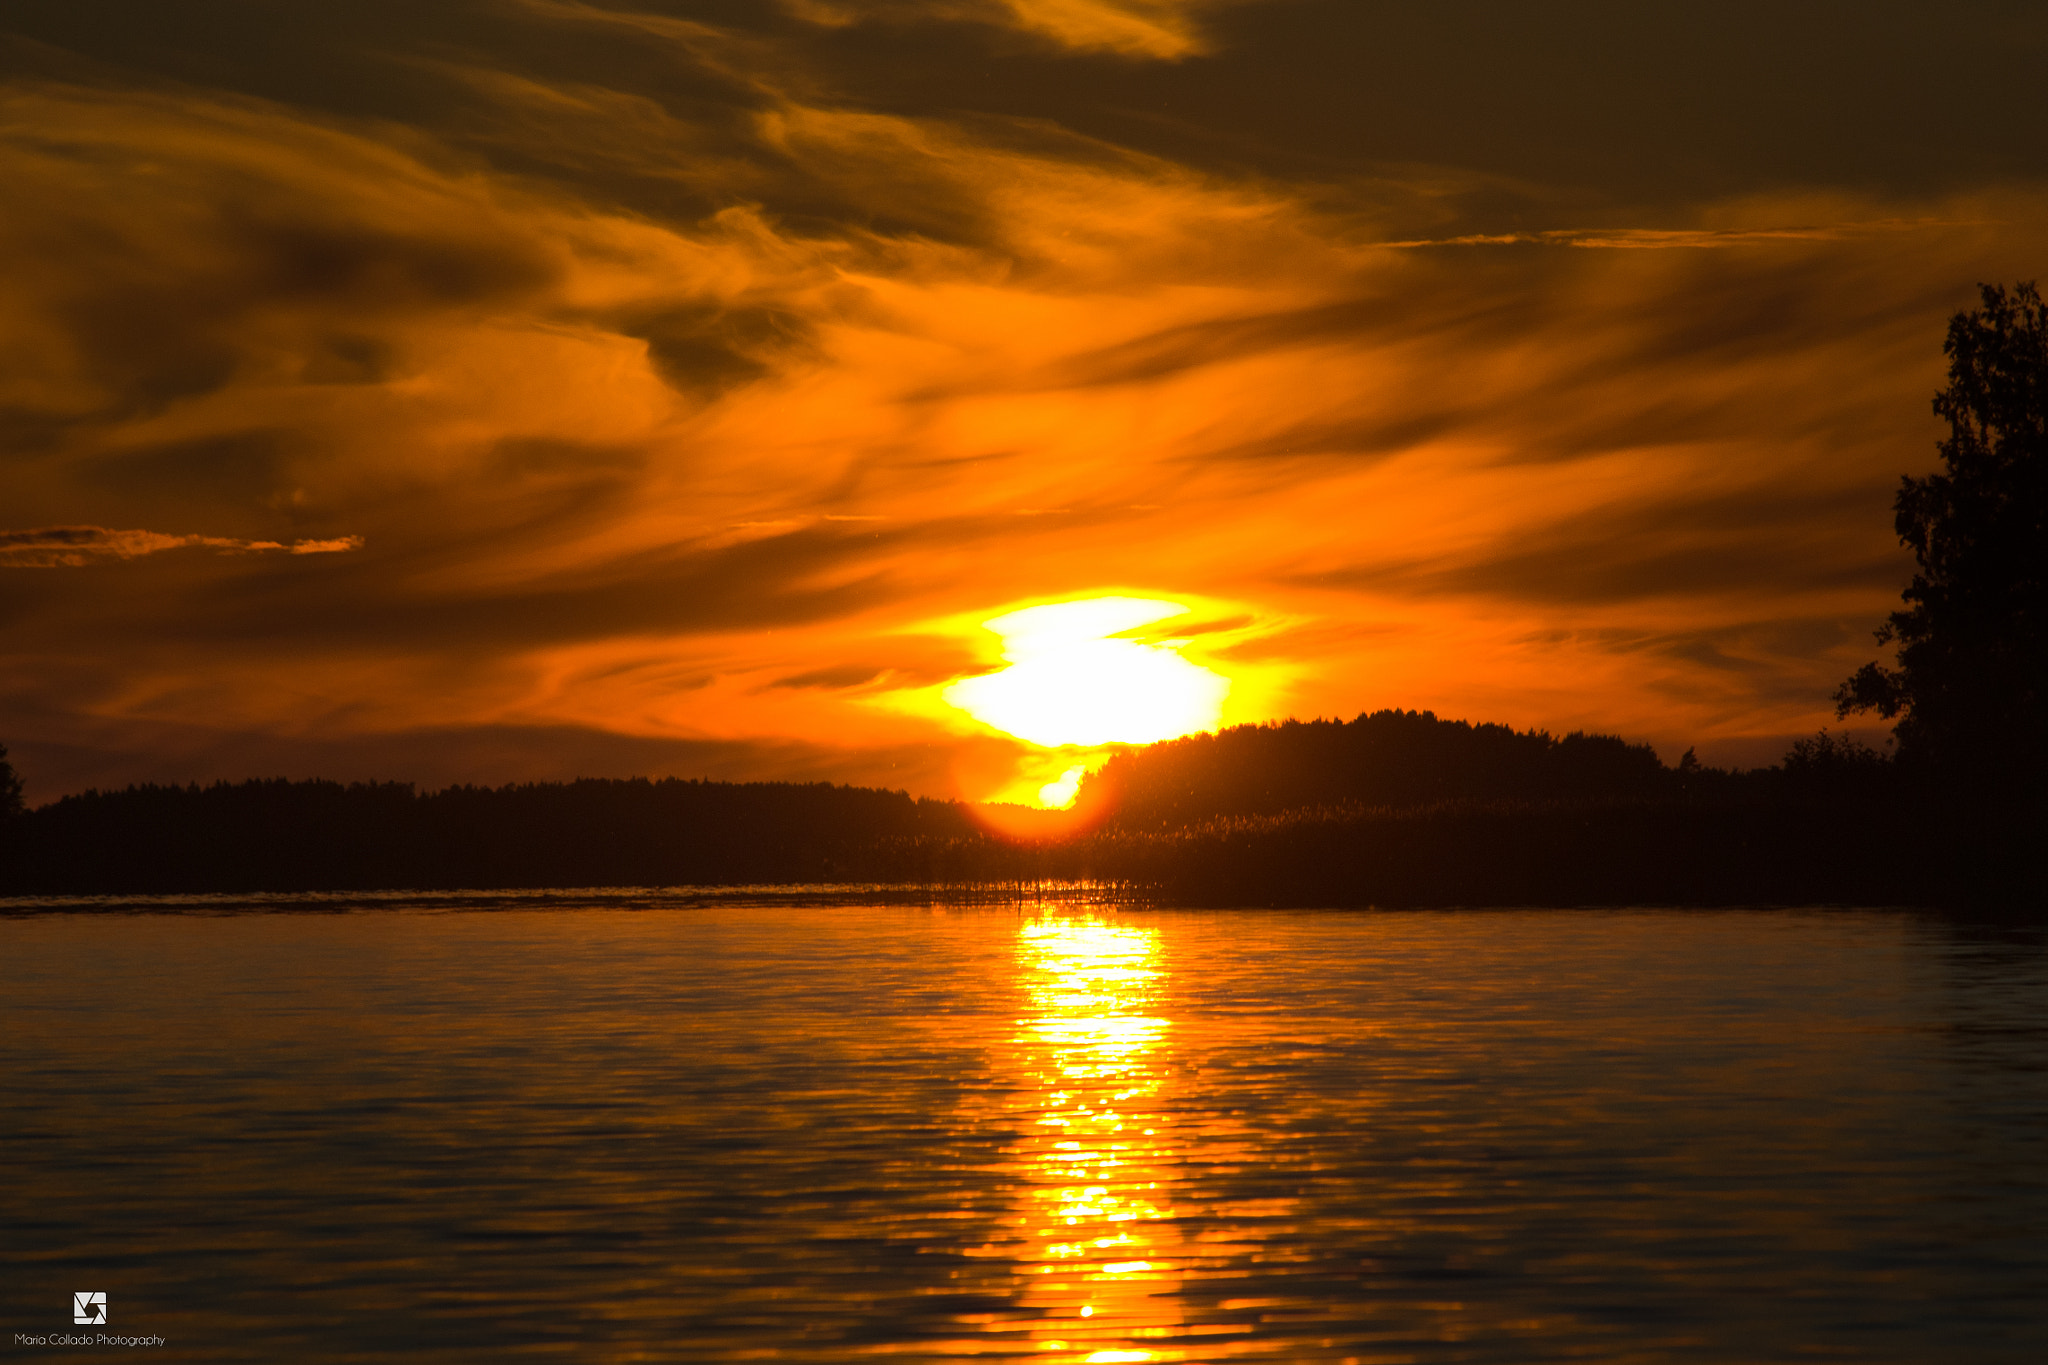 Photograph sunset by María Collado on 500px